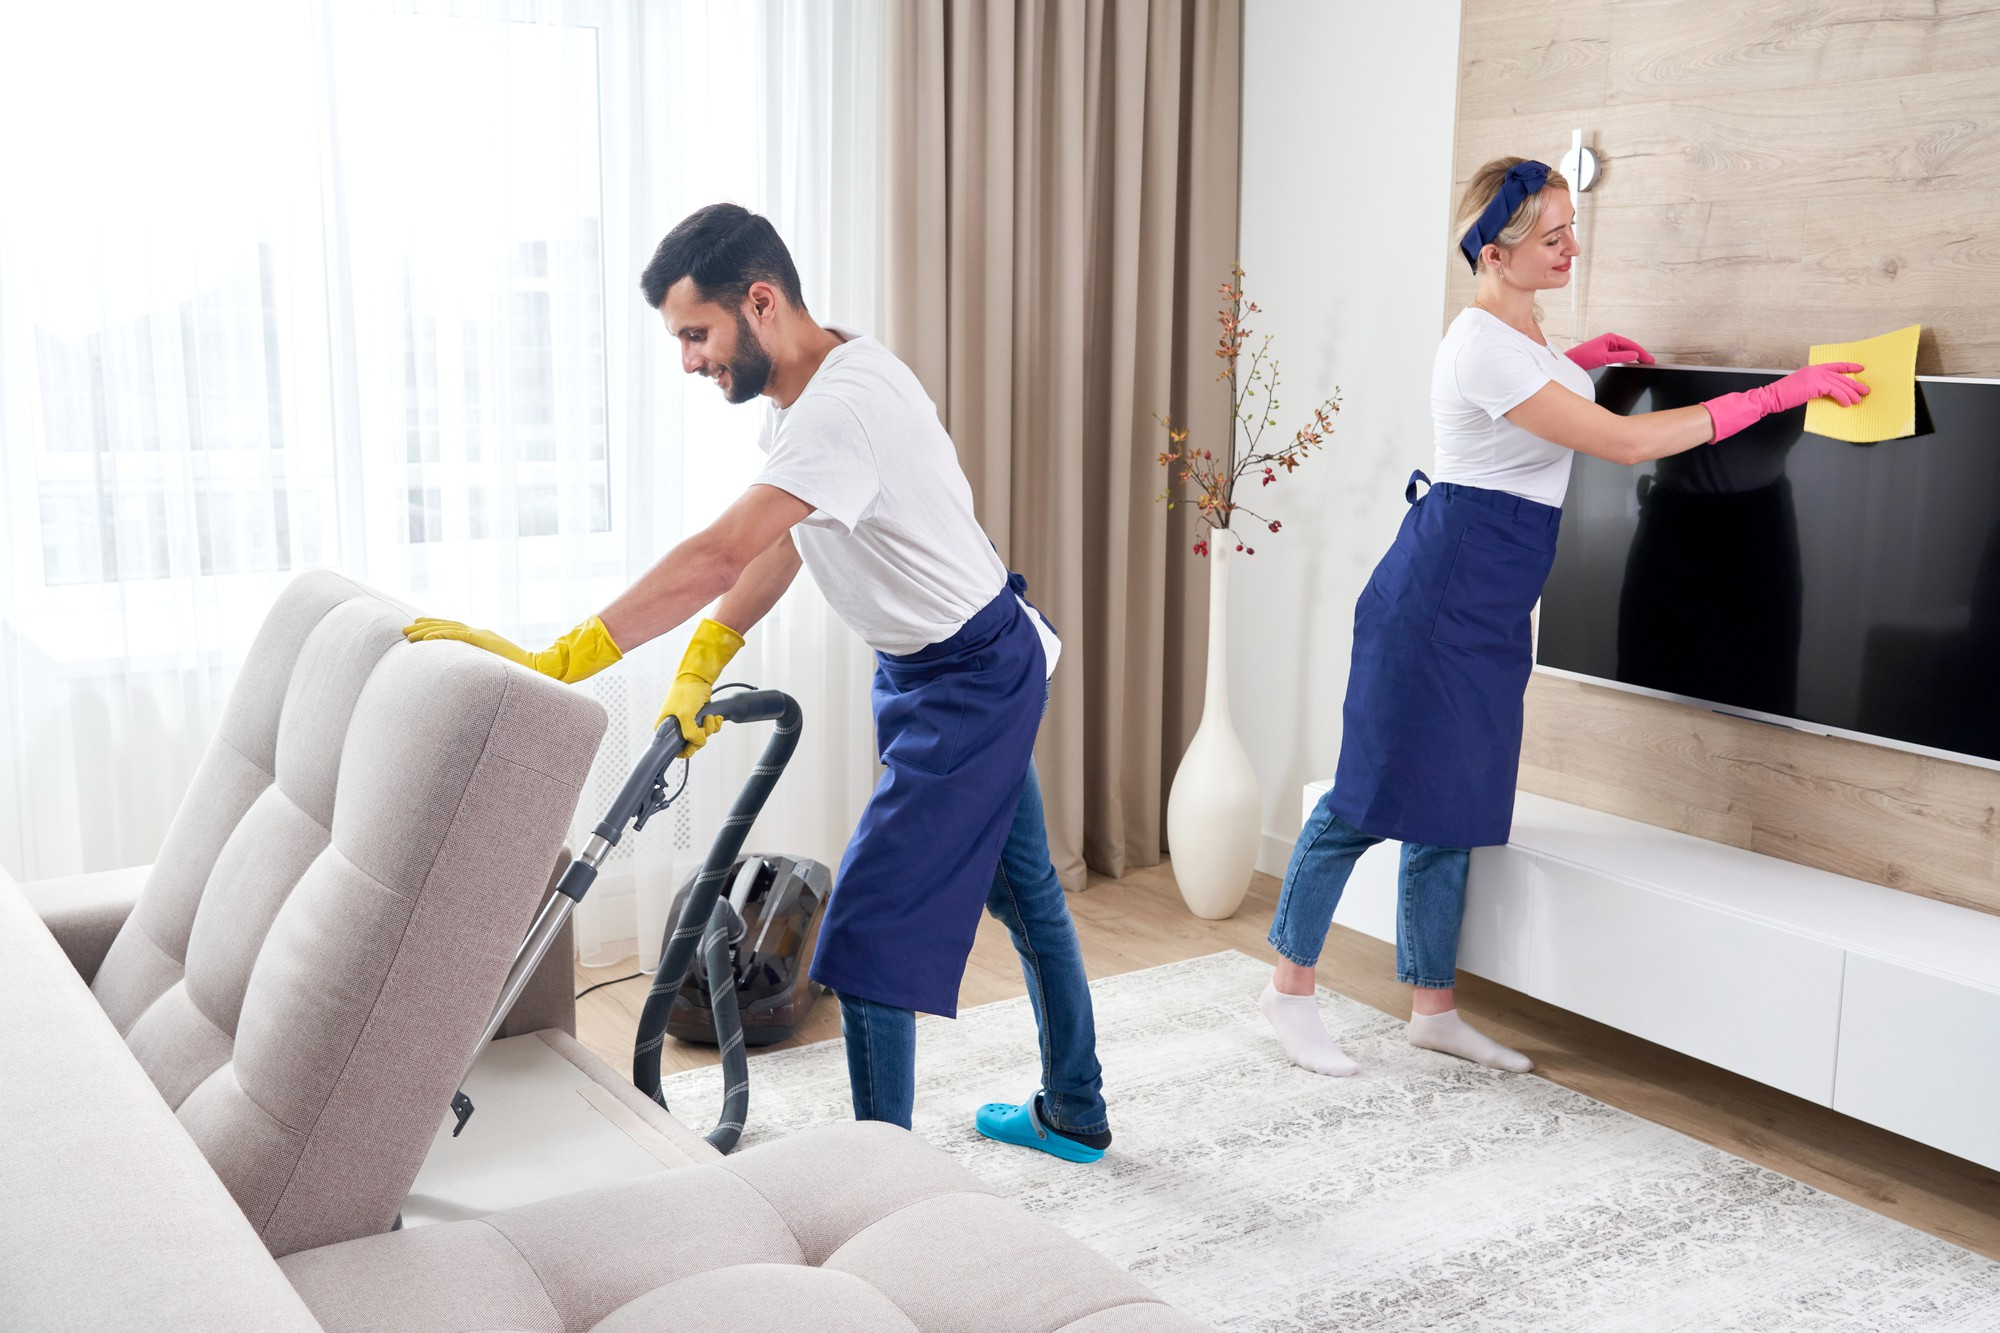 Professional cleaners cleaning the living room area